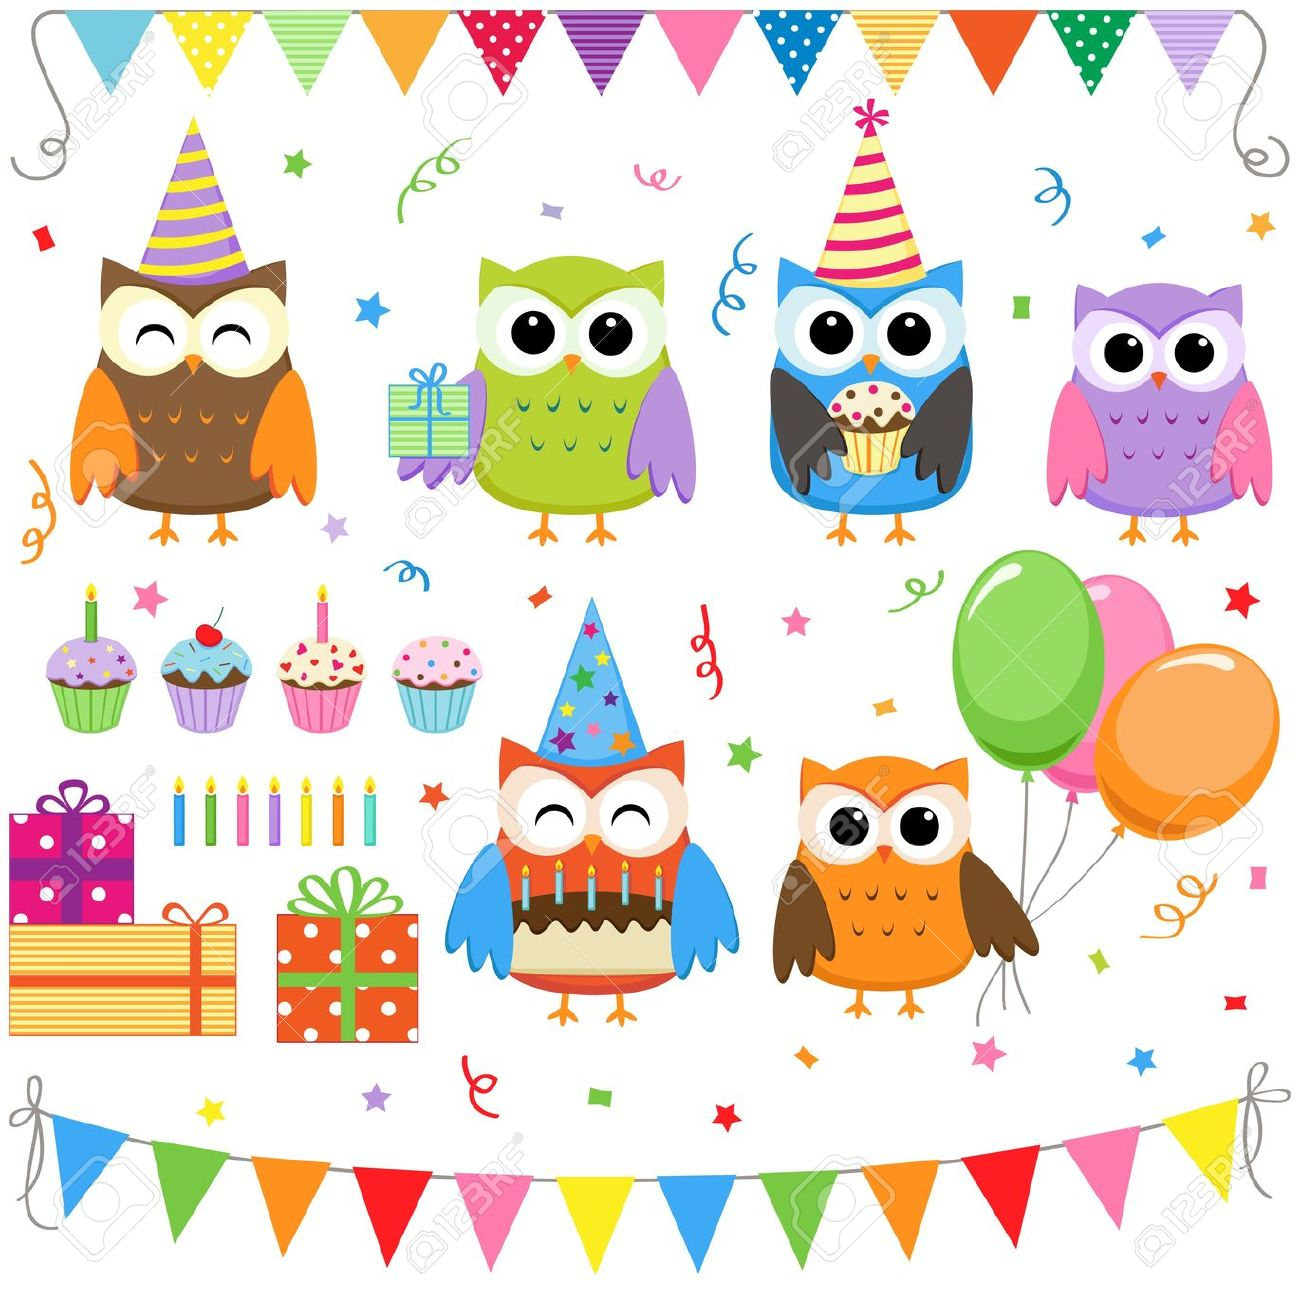 Eule clipart geburtstag - ClipartFest clipart library download